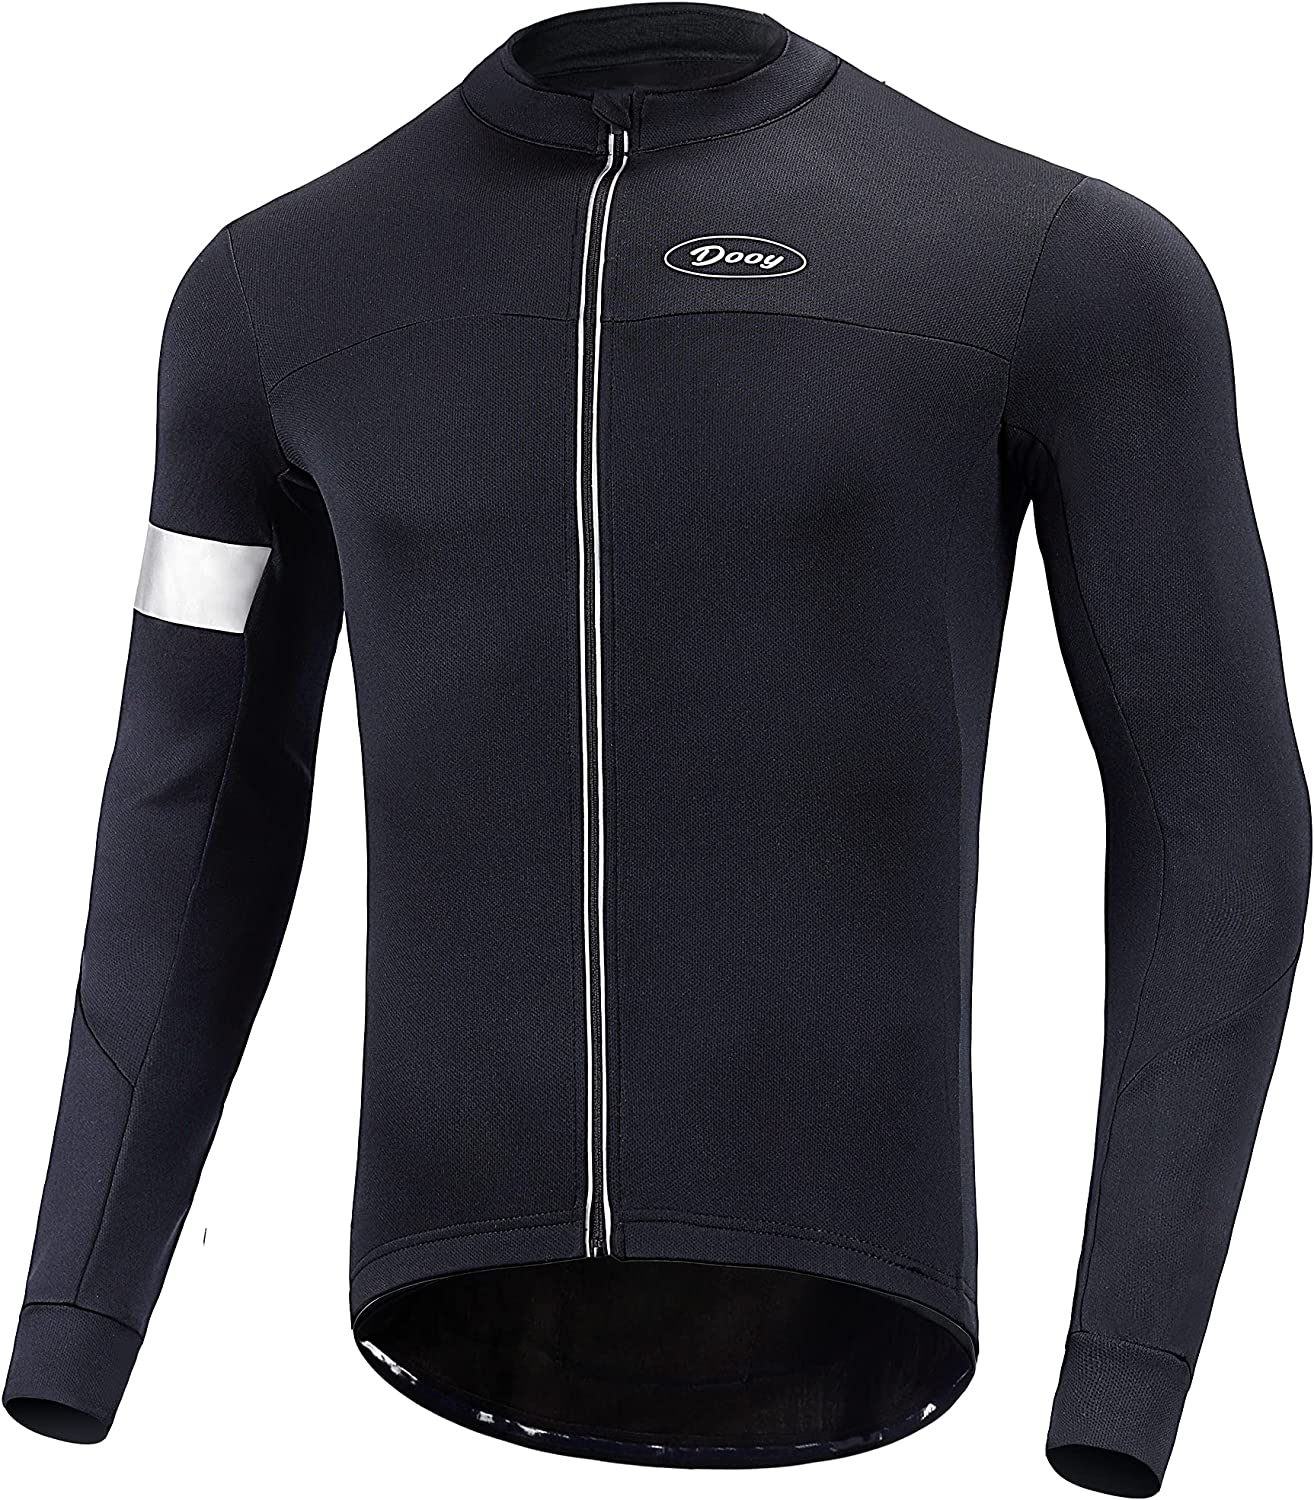 Dooy Men's Ranking Very popular integrated 1st place Cycling Bike Jersey Thermal Shirt Long Sleeve Biking